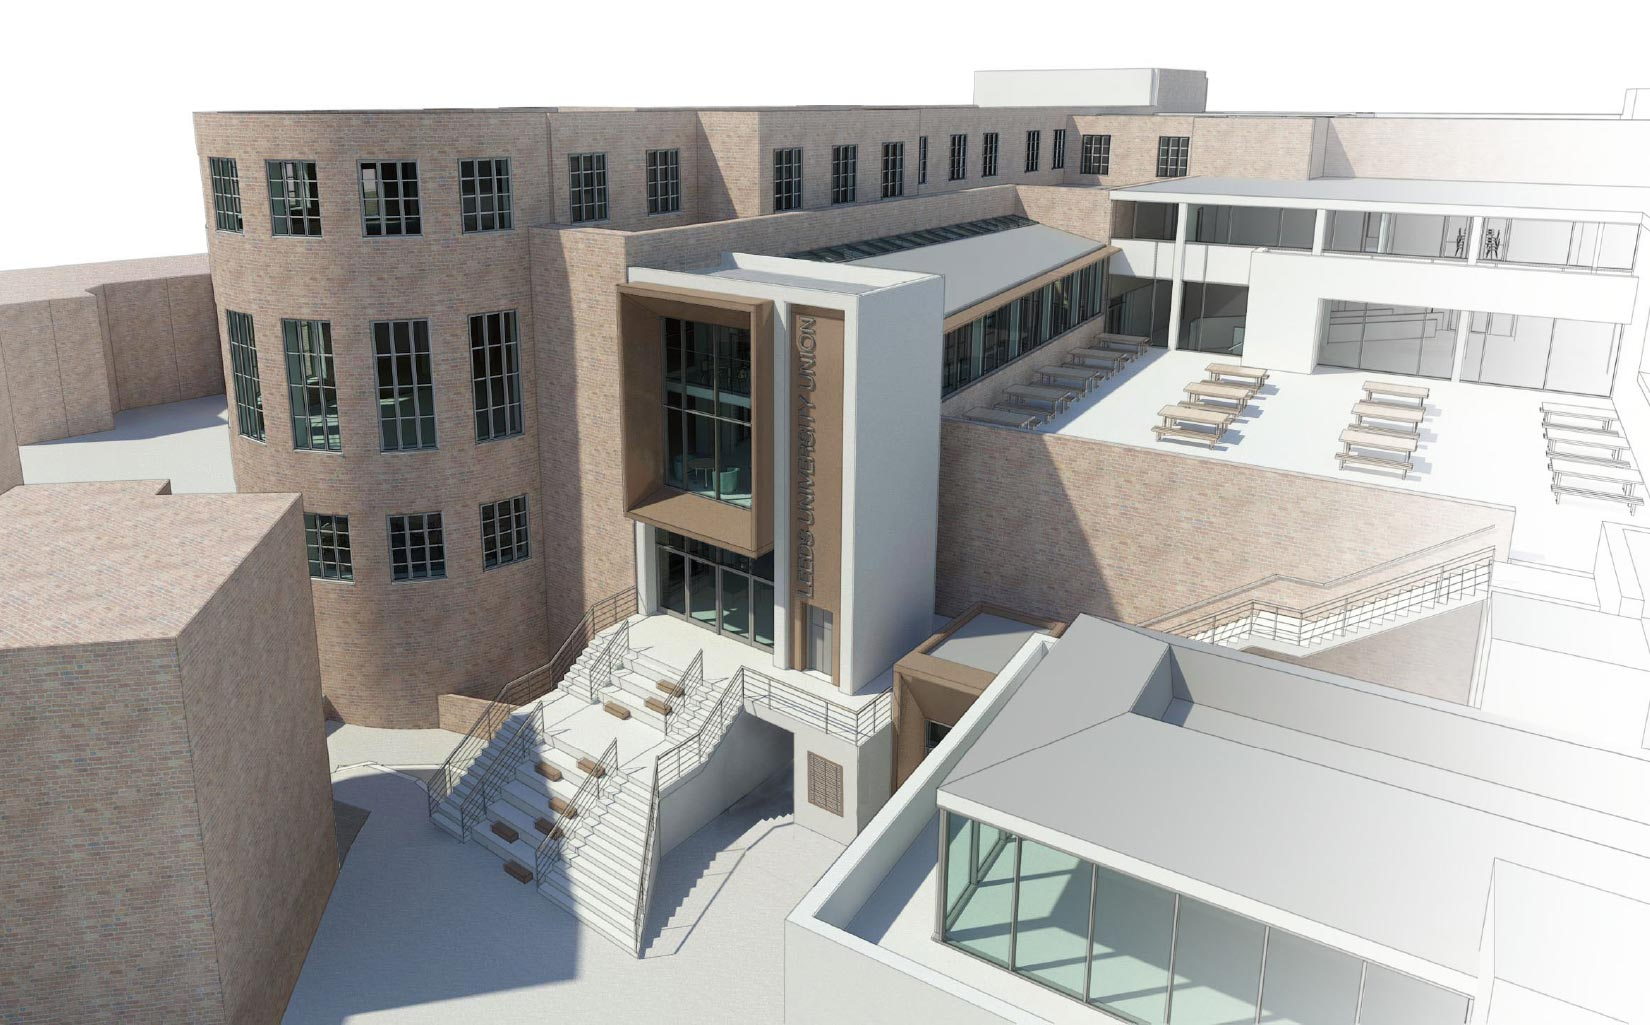 University of Leeds Students Union, 3D Visual of the entrance